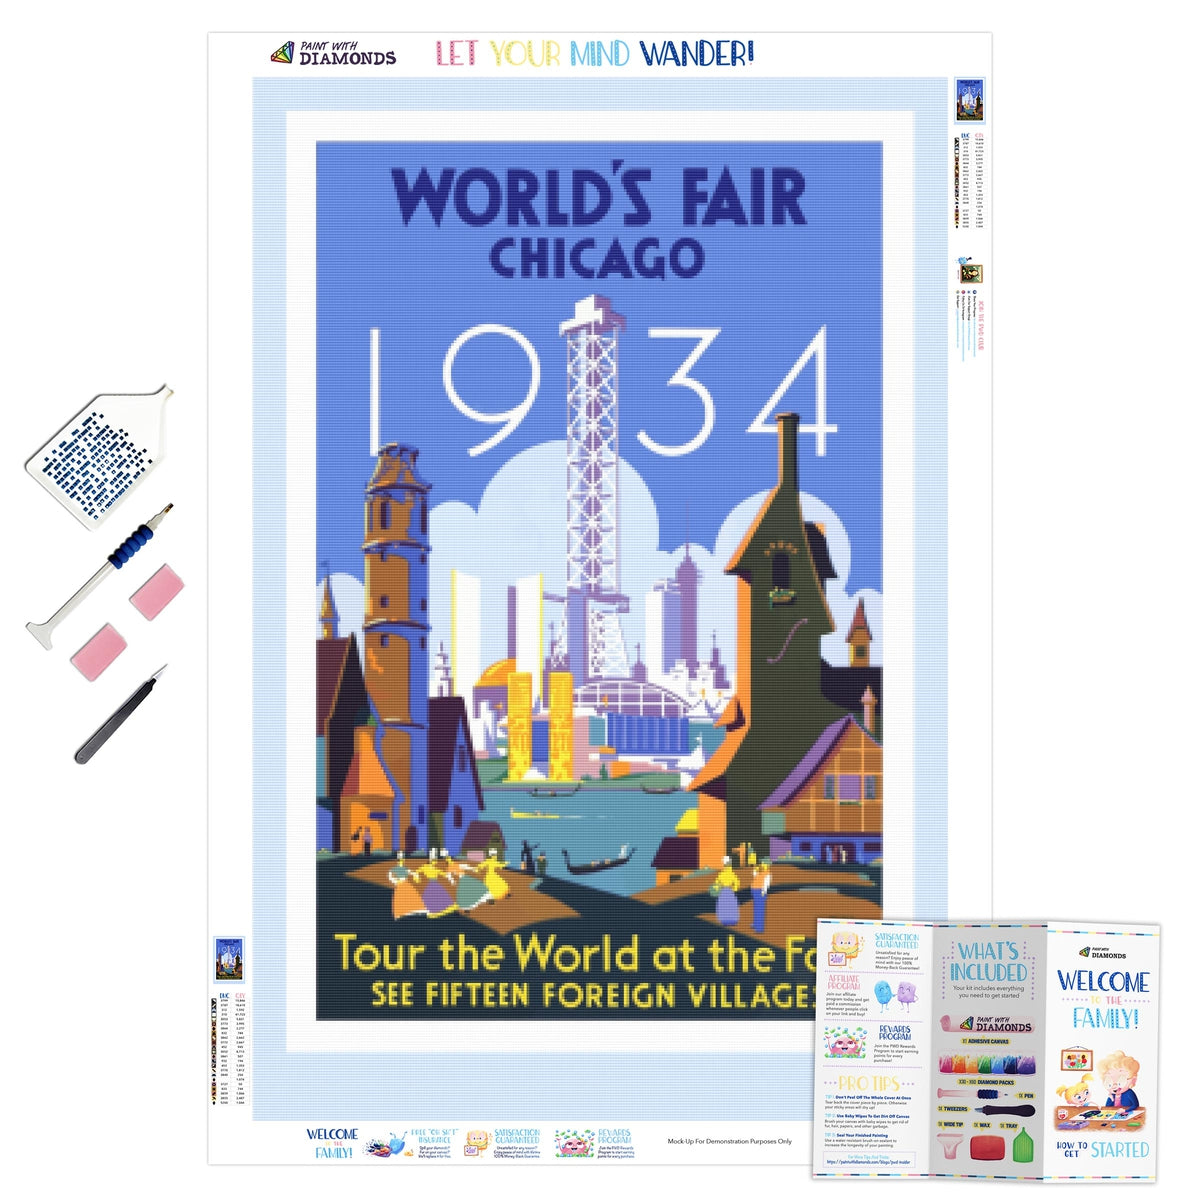 World's Fair Vintage Poster